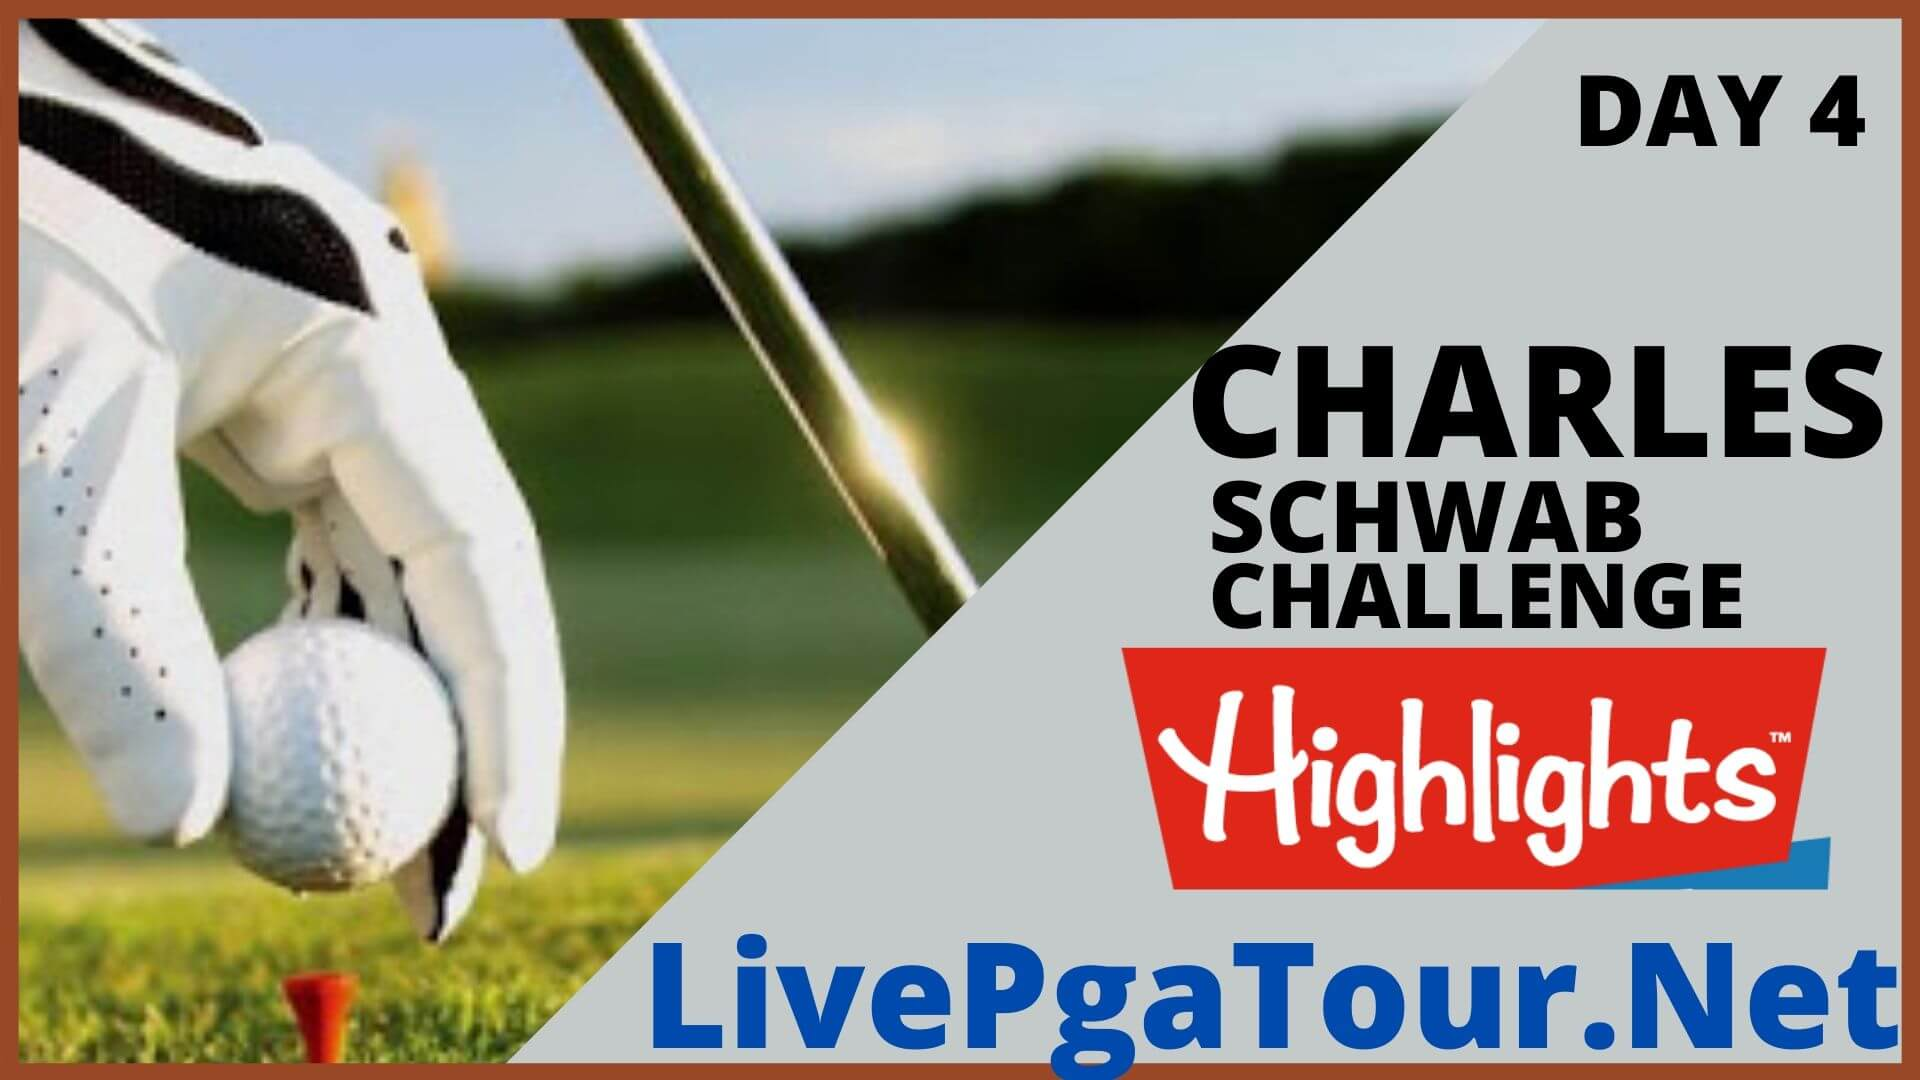 Charles Schwab Challenge Highlights 2020 Day 4